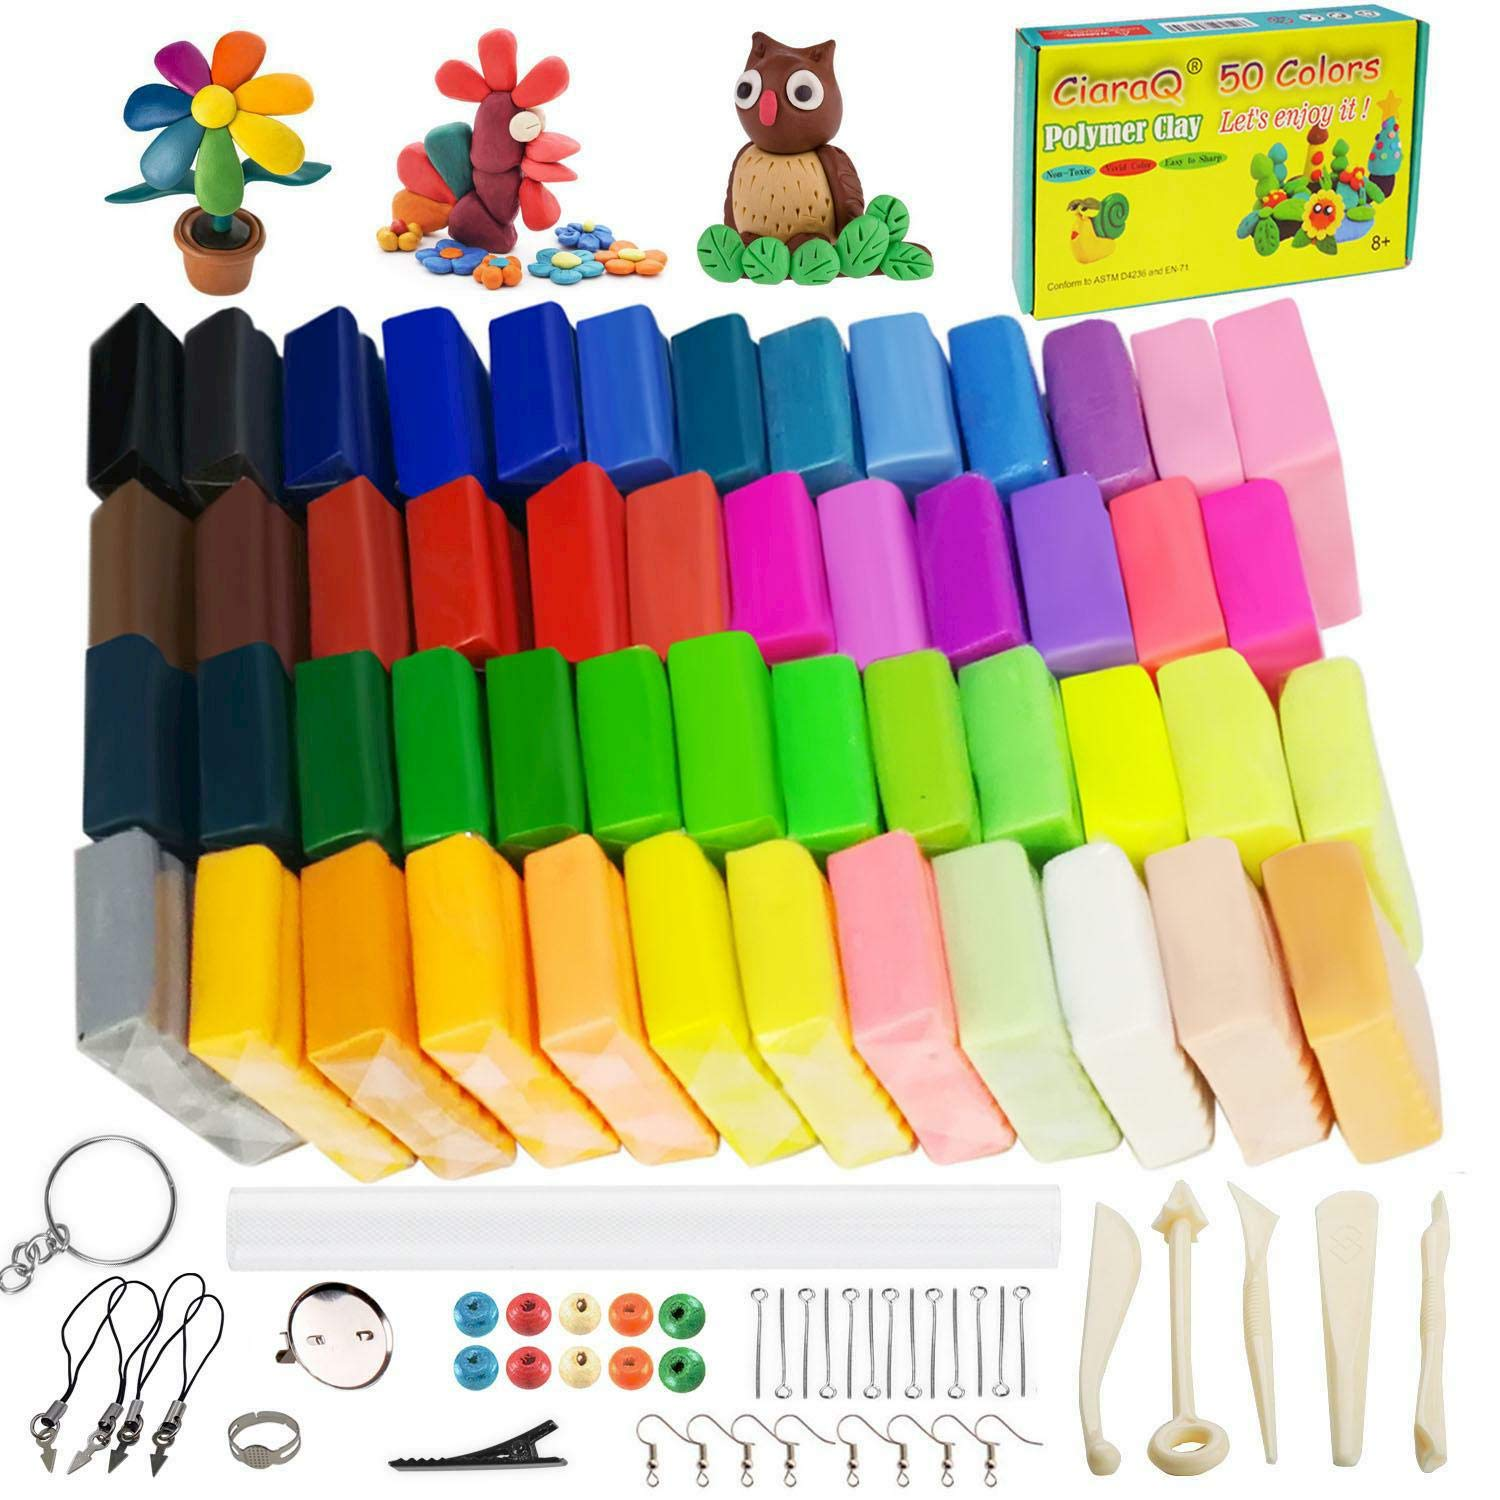 Polymer Clay Starter Kit, 50 Colors Oven Bake Clay with 8 pcs Modeling Tools and 30 Jewelry Accessories, Safe and Nontoxic DIY Baking Clay Blocks Accessories.